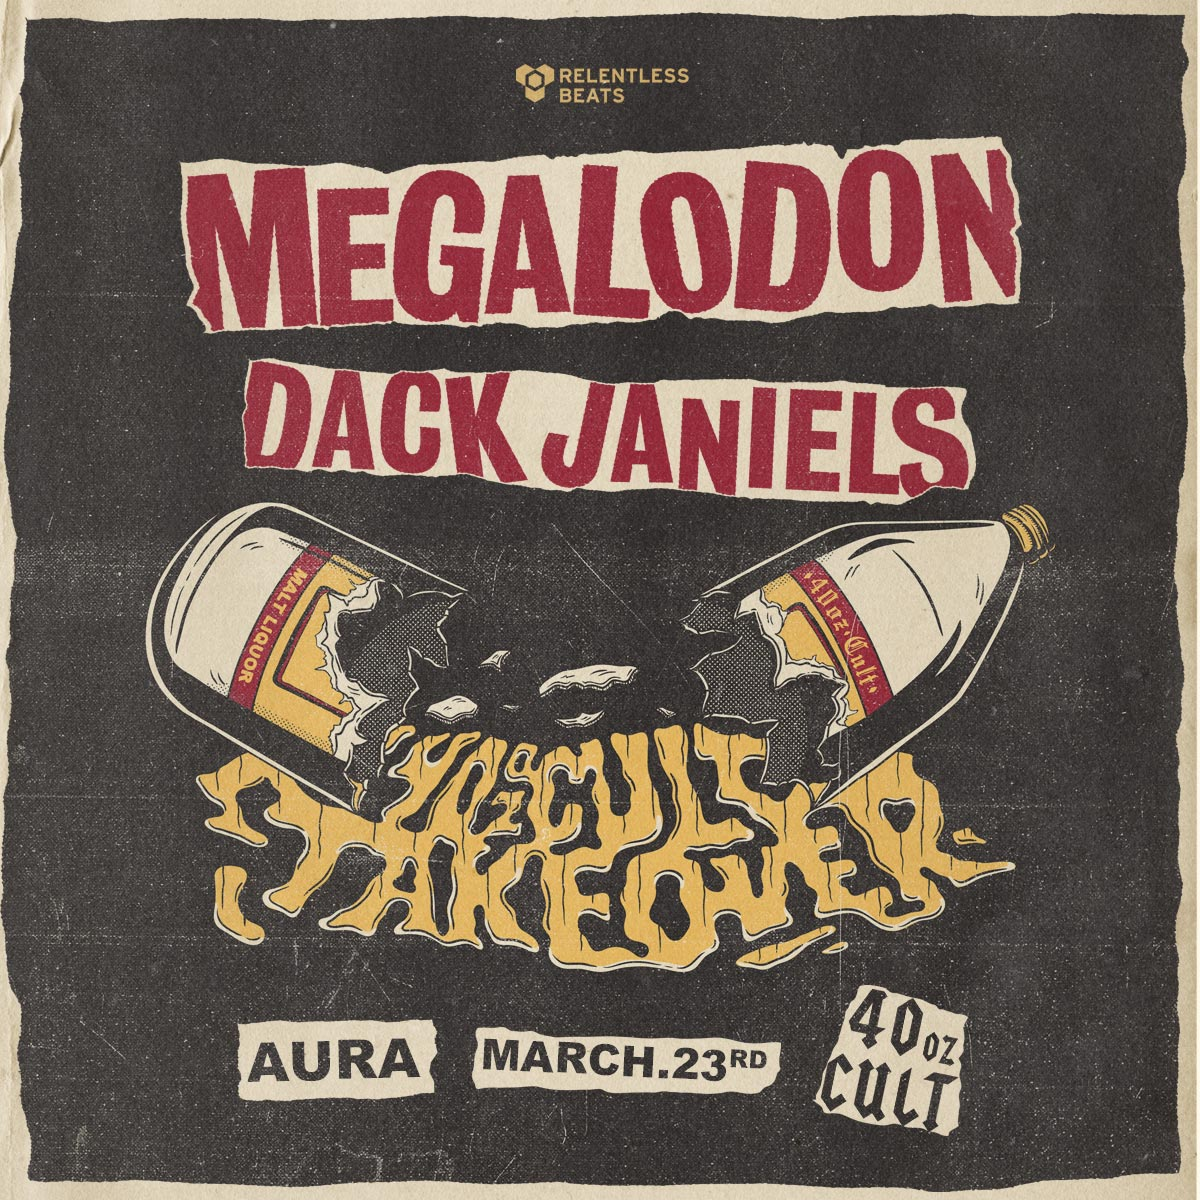 Flyer for Megalodon + Dack Janiels